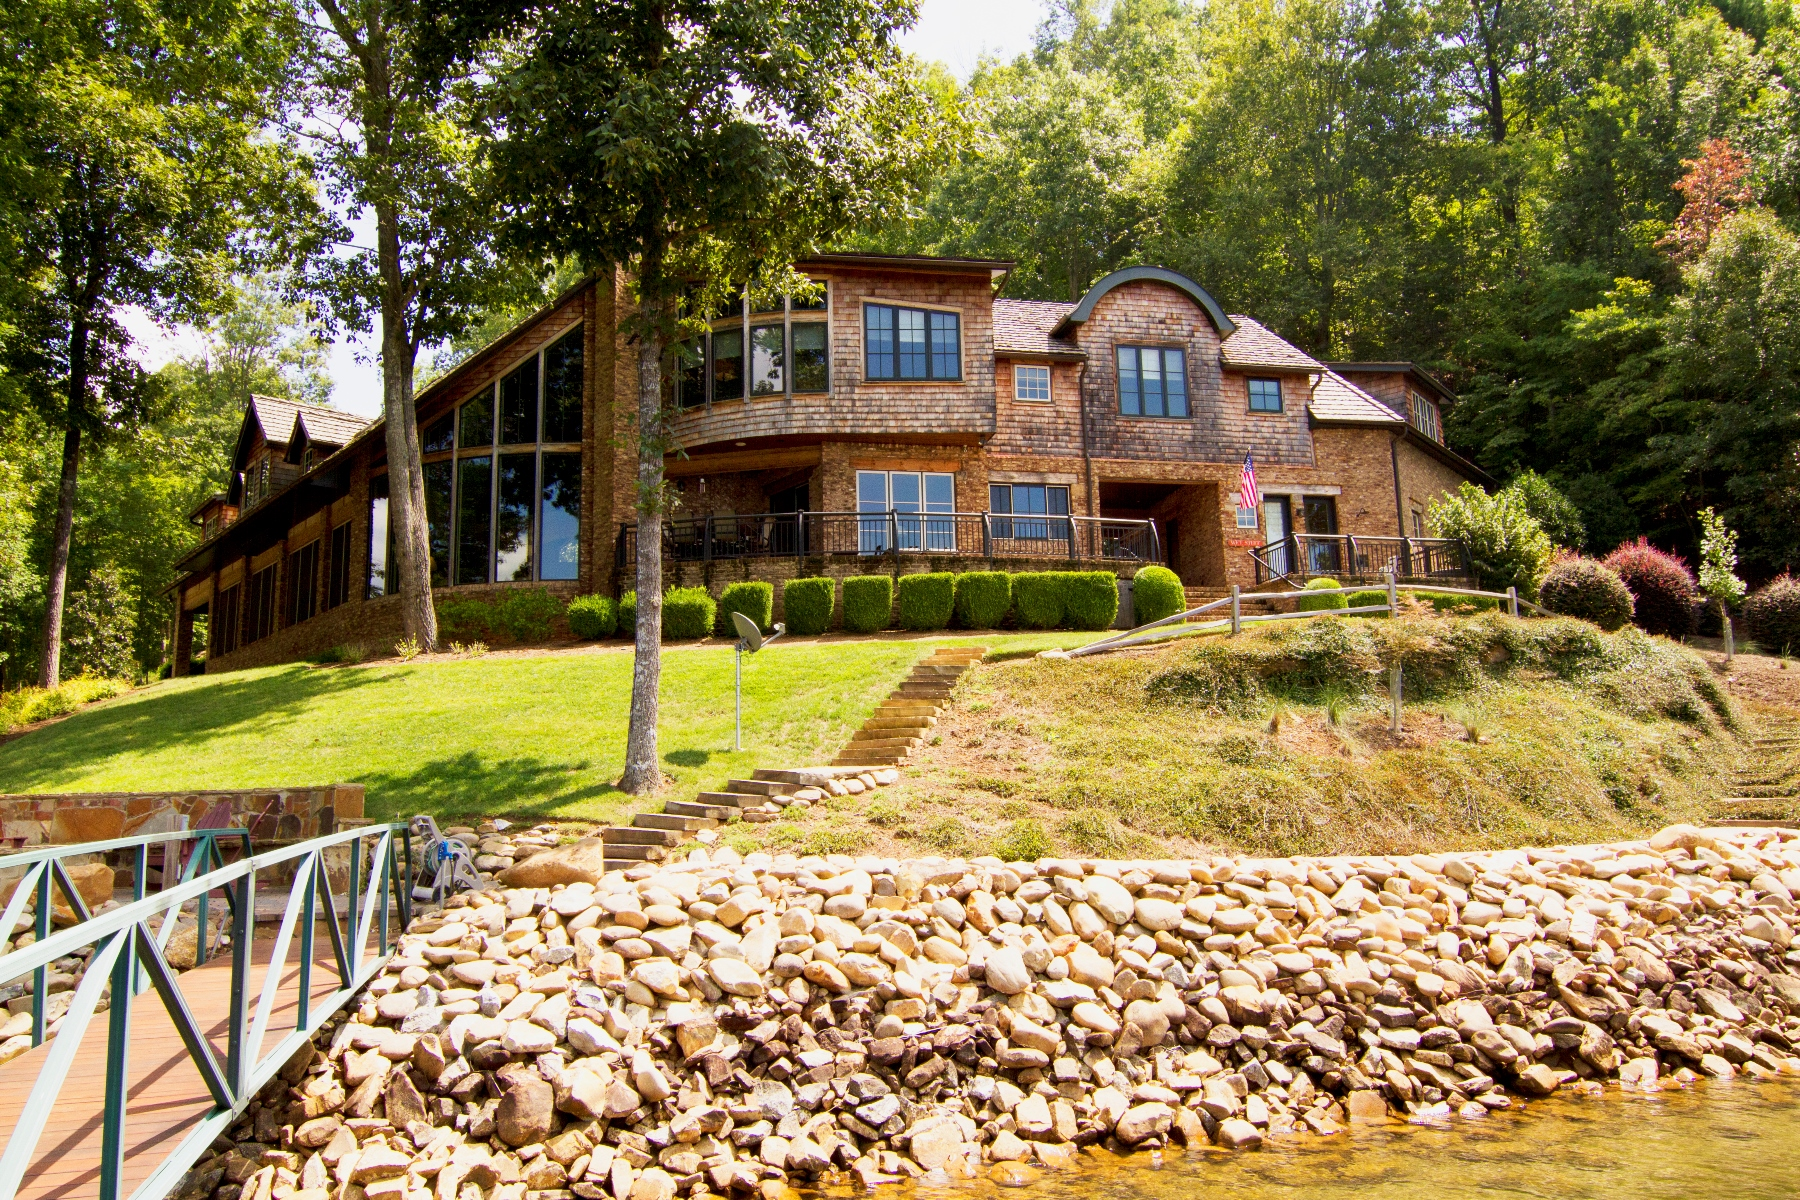 Single Family Home for Sale at Captivating Architectural Masterpiece on a Magnificent Semi-point Waterfront Lot 5 N. Turtle Rock Road + C2-51 The Reserve At Lake Keowee, Sunset, South Carolina, 29685 United States